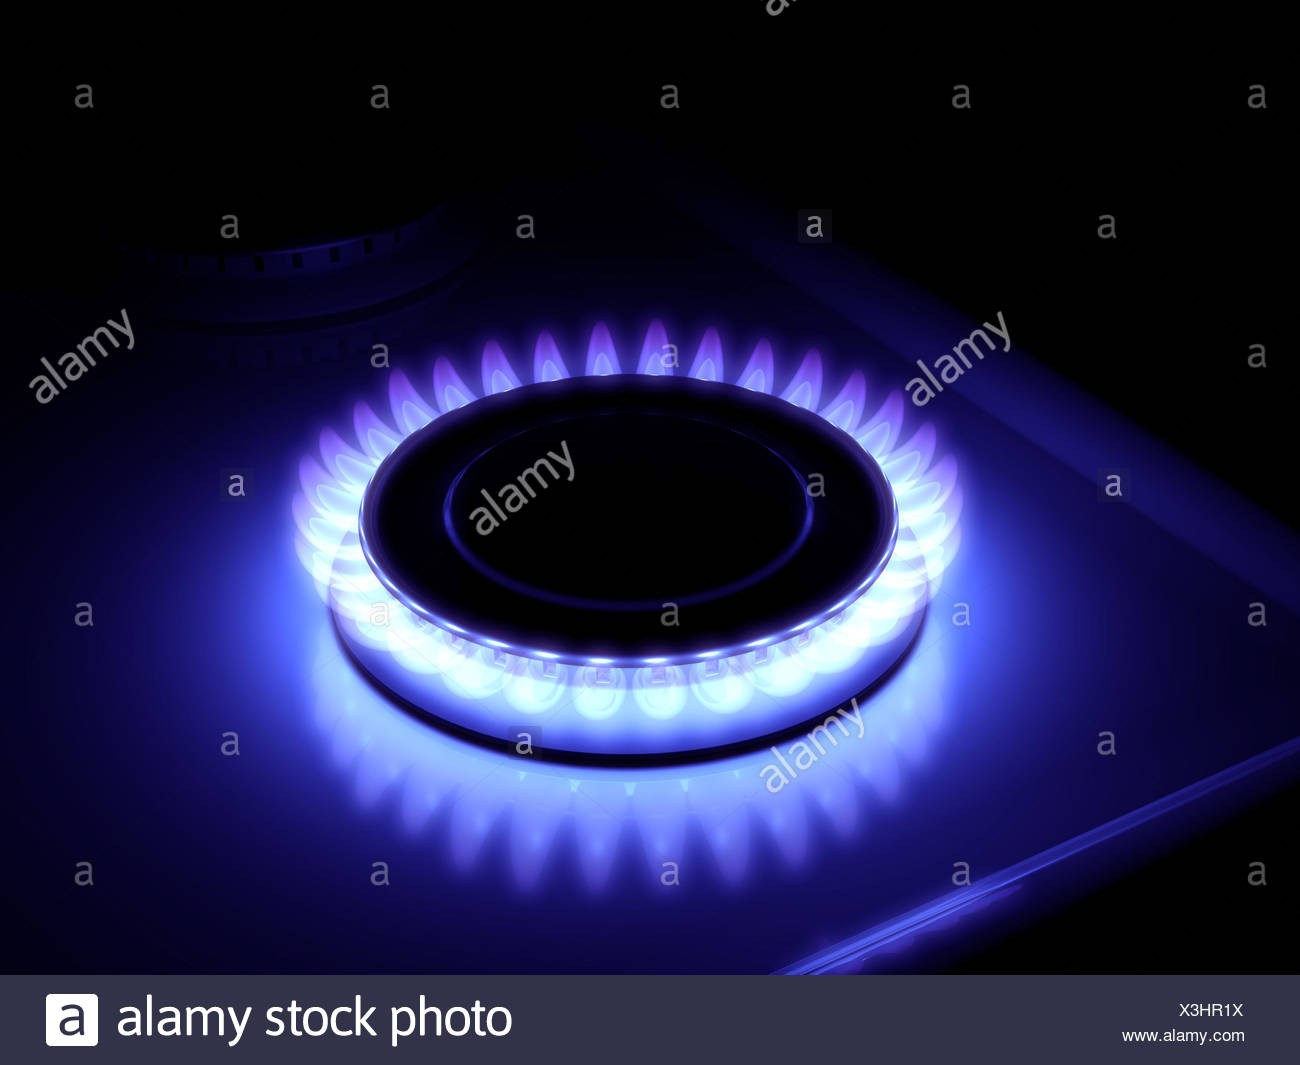 Fire - Stock Image